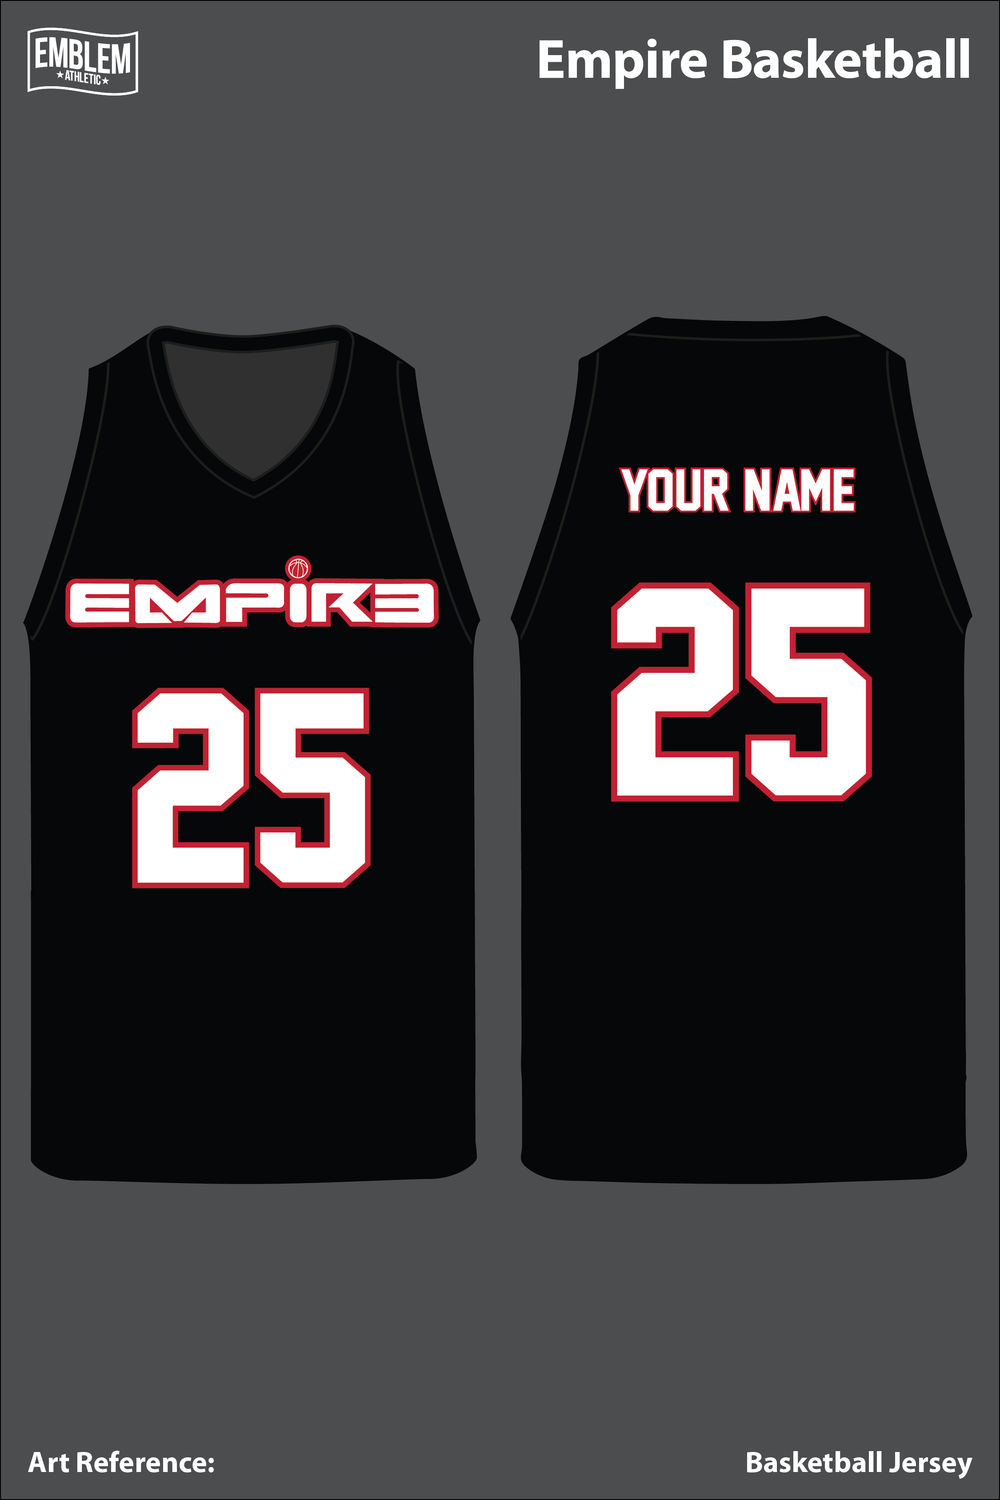 Empire Basketball - Closed: March 2018Total Sales: $550.00Commission: $27.50